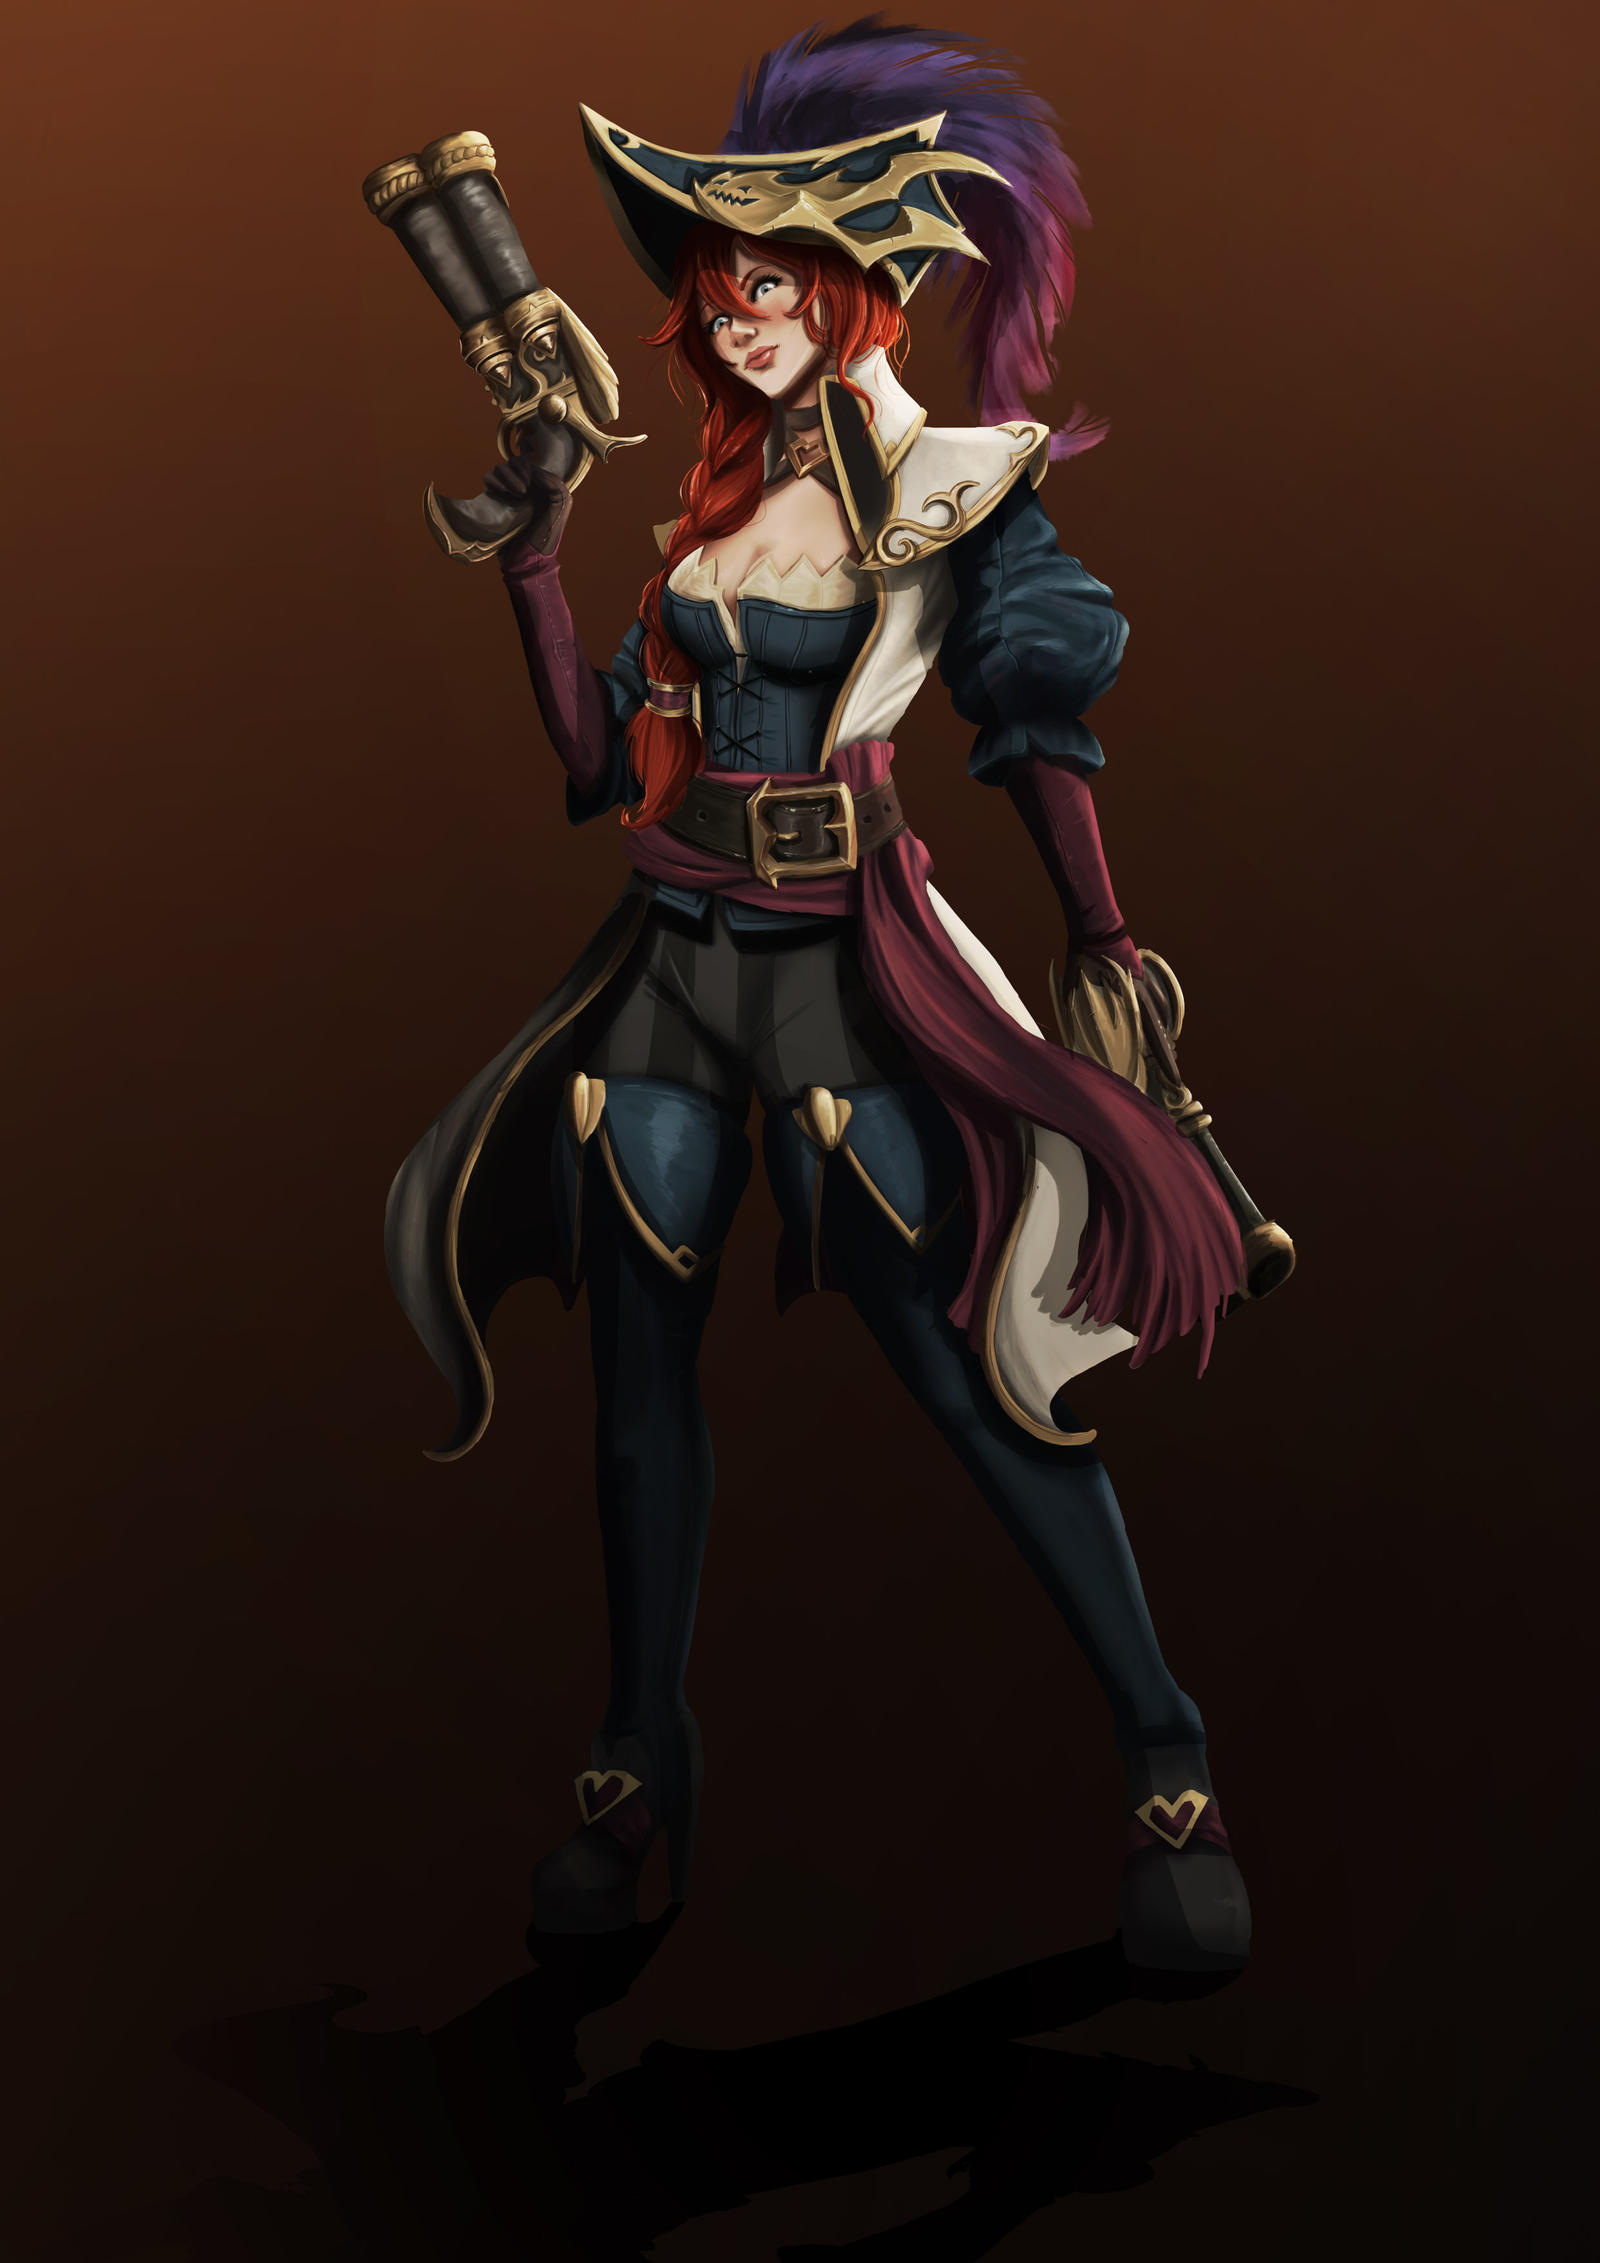 FanArt Captain Fortune by Pandhes